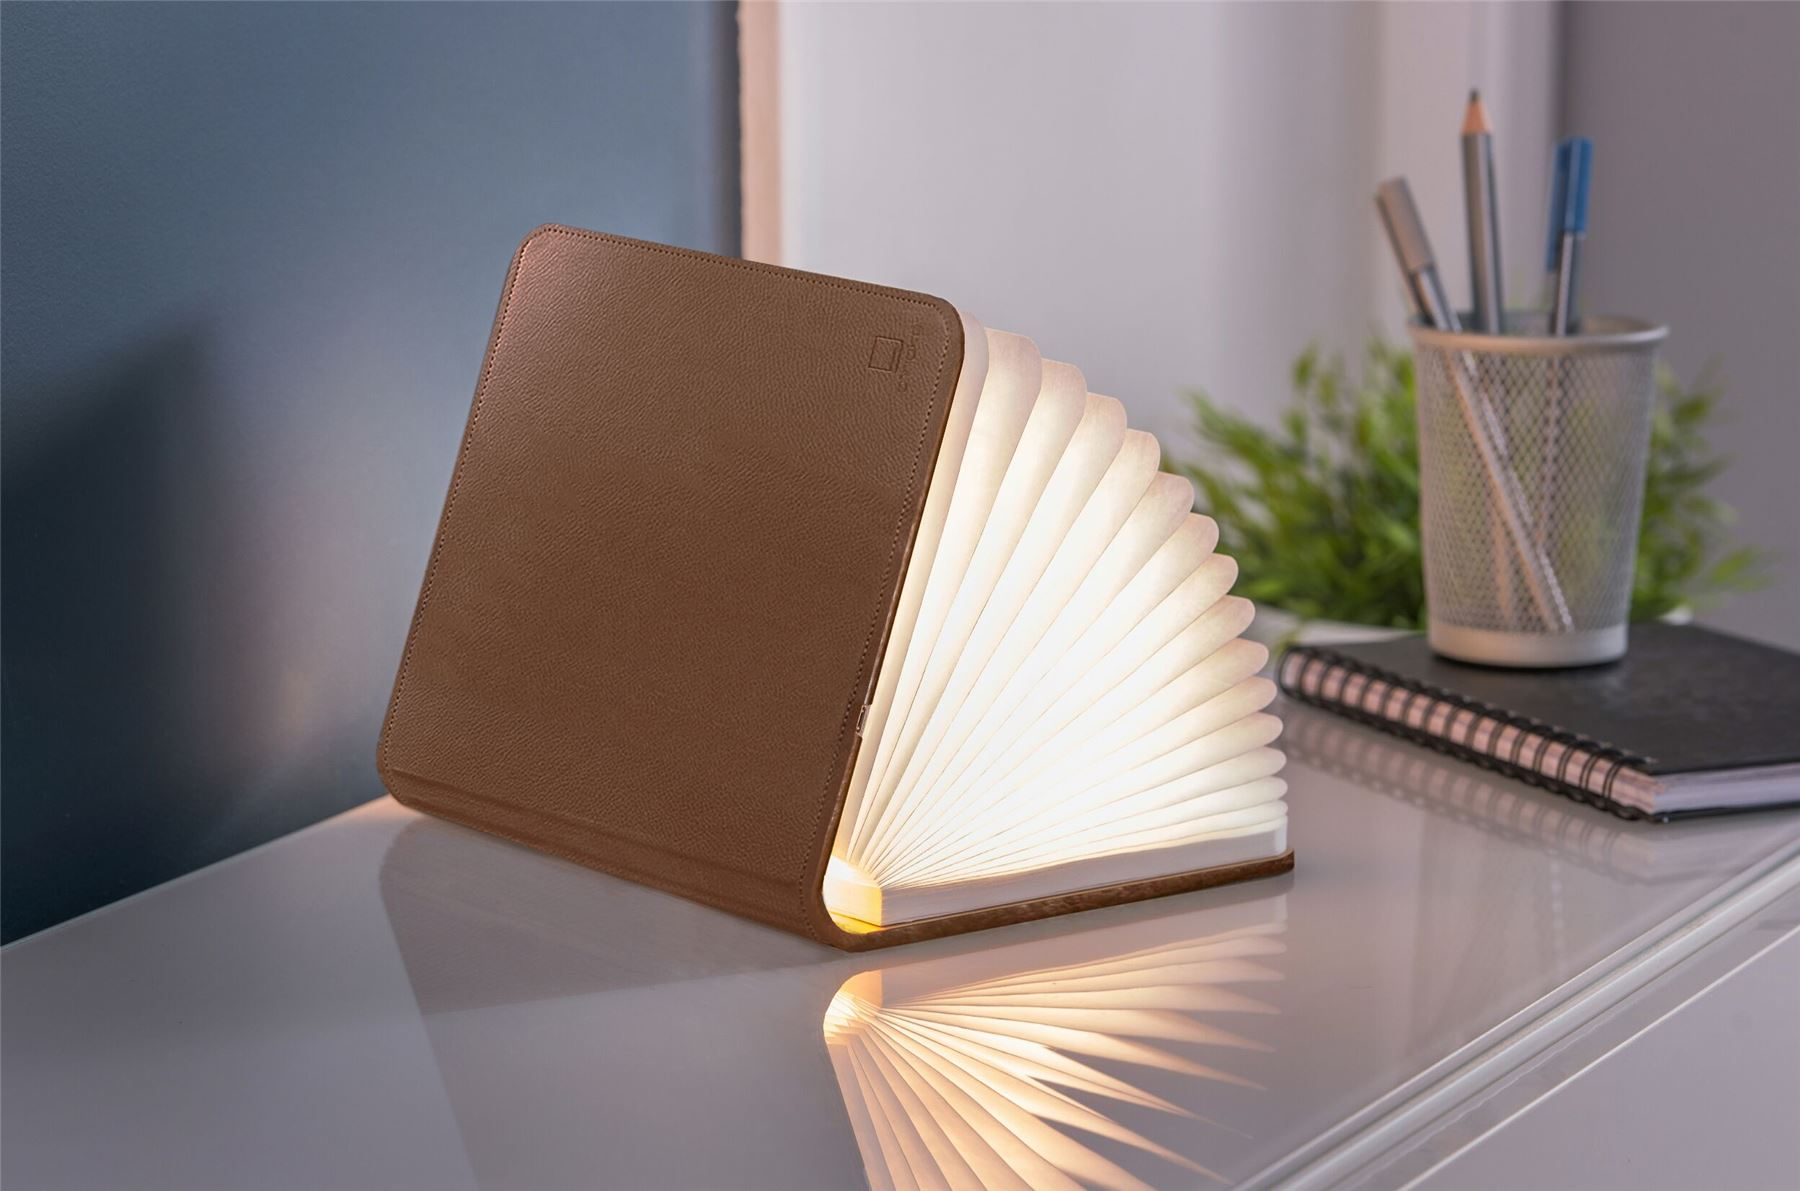 LED-Wood-Leather-Effect-Book-Desk-Lamp-Gingko-USB-Rechargeable-360-Light miniatuur 18